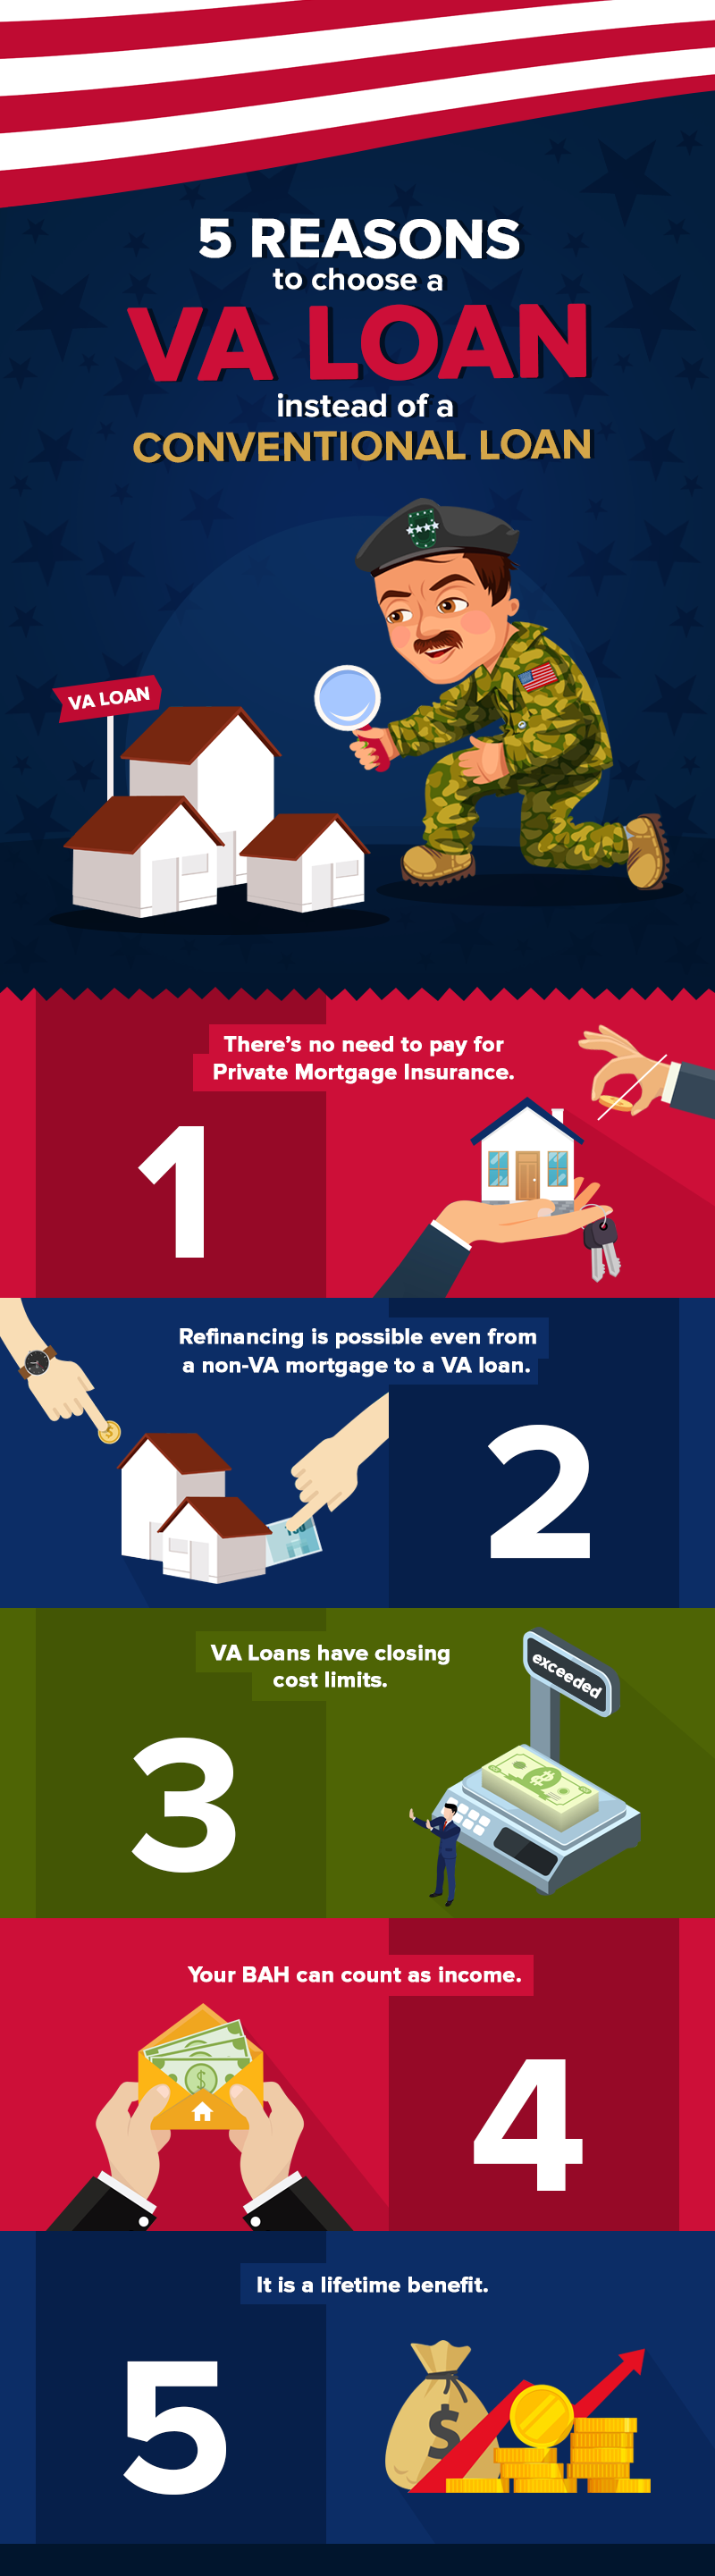 5 Reasons To Choose A VA Loan Instead of A Conventional Loan.png